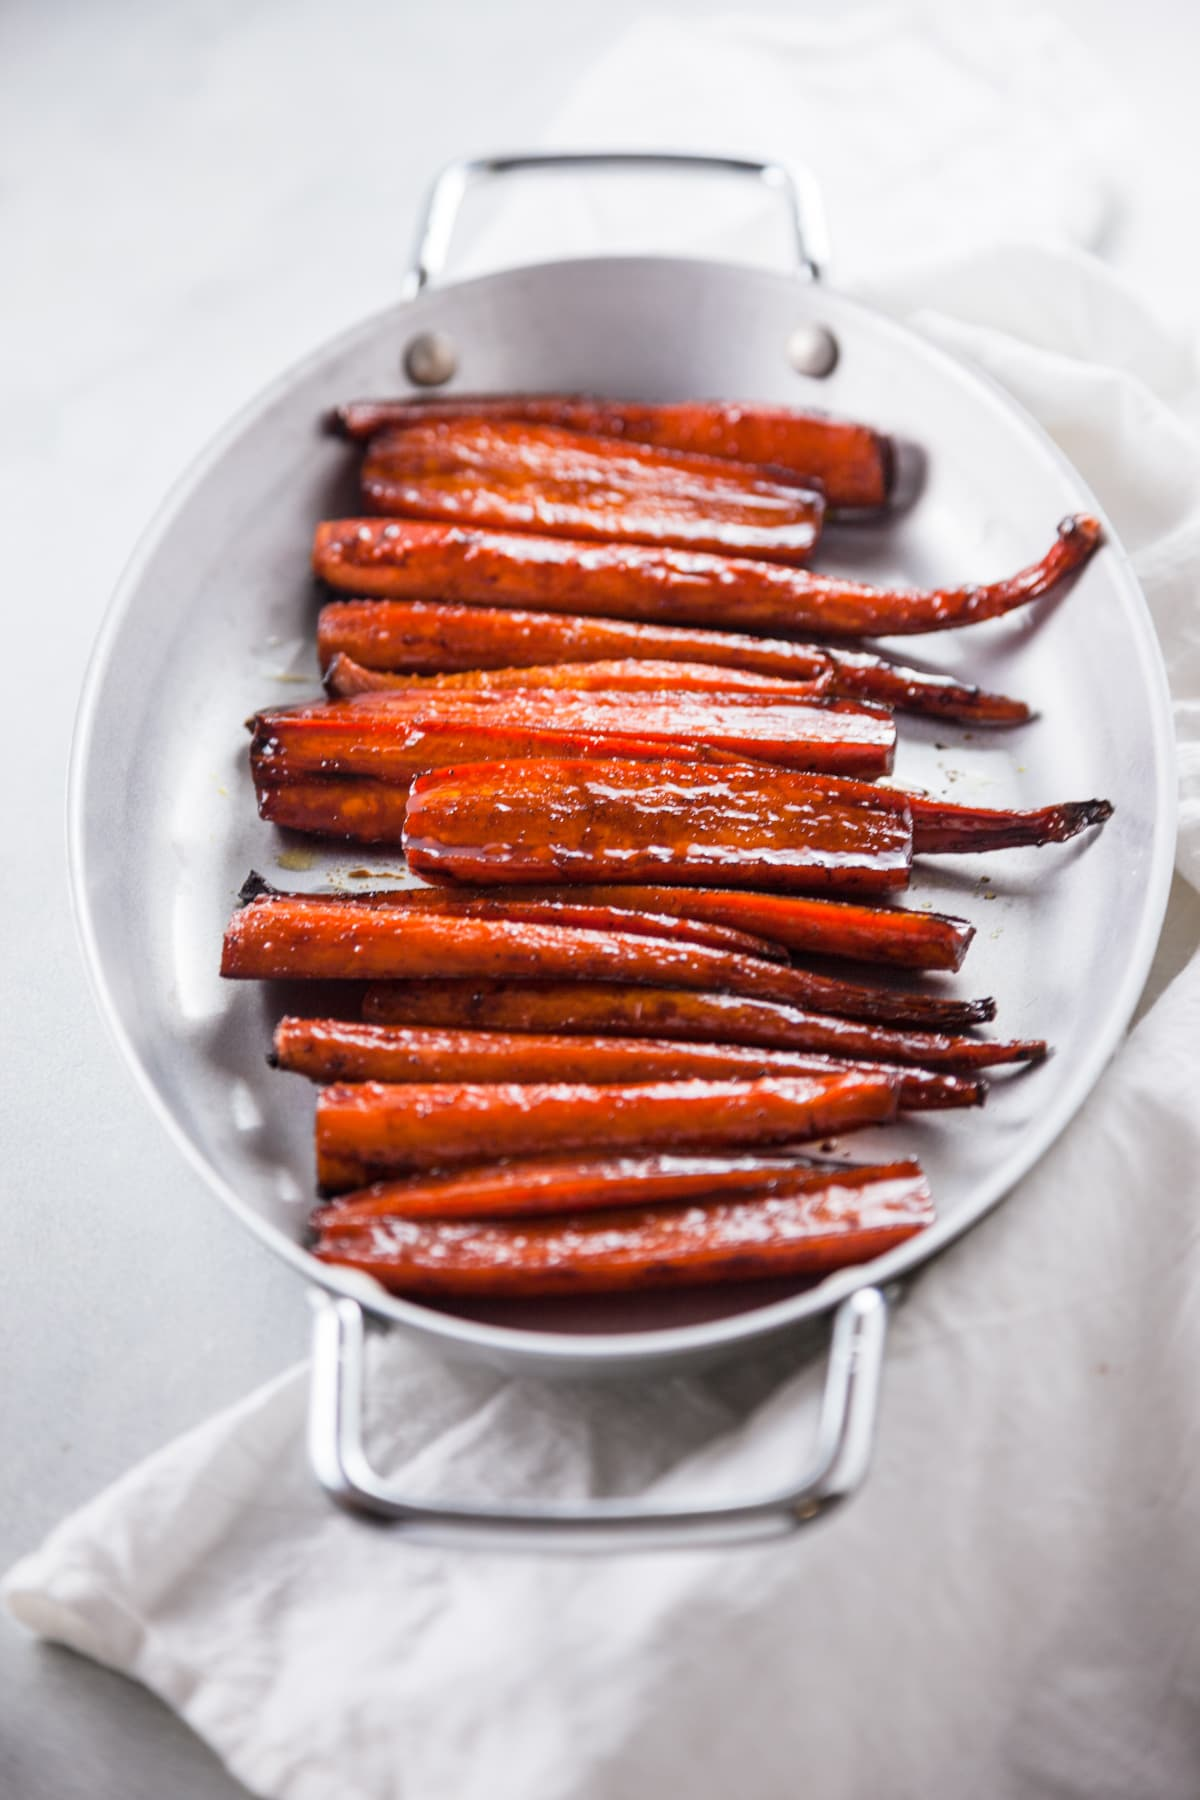 Balsamic Glazed Roasted Carrots in a silver tray.